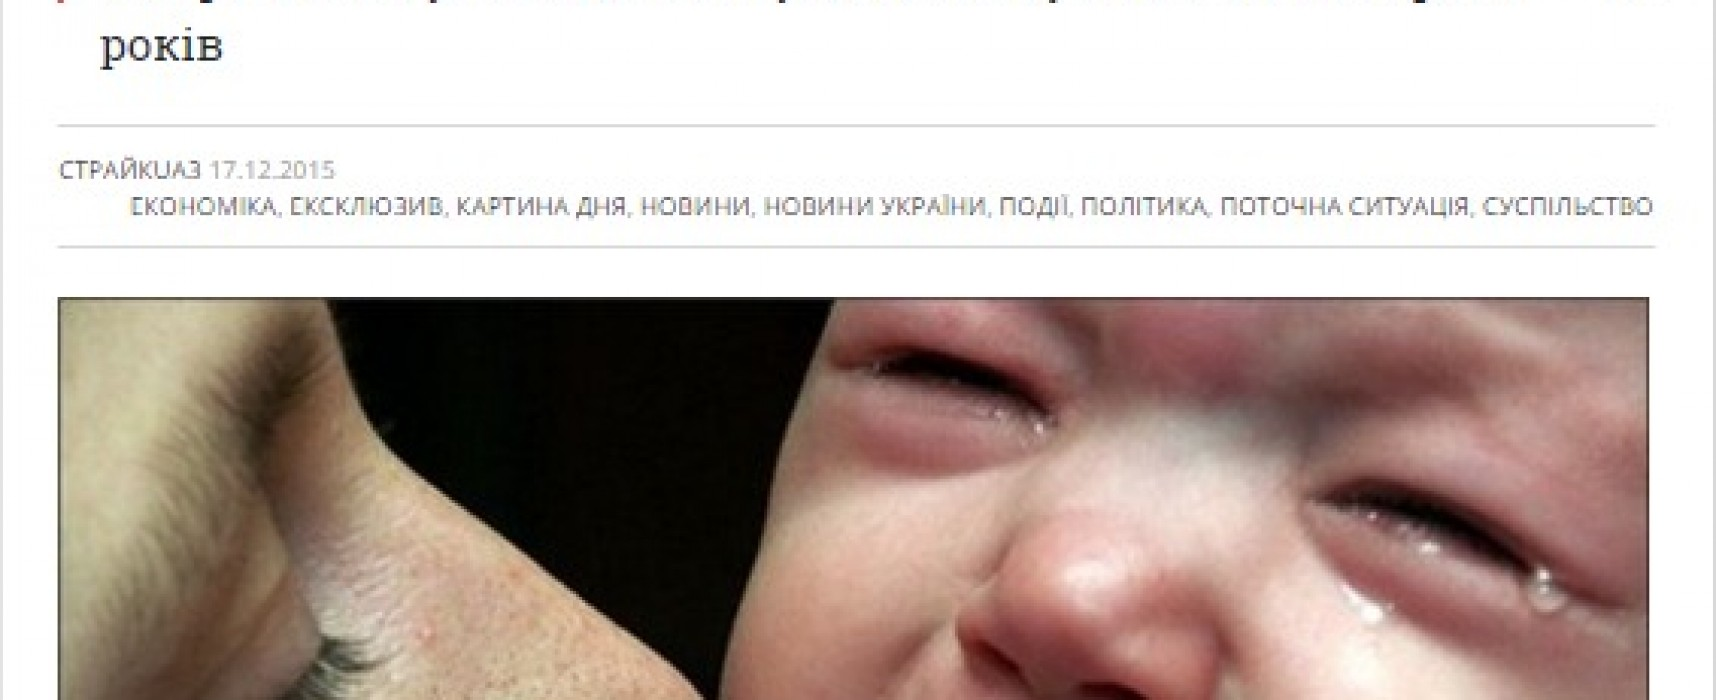 Fake: Child Care Allowance to Be Cancelled in Ukraine